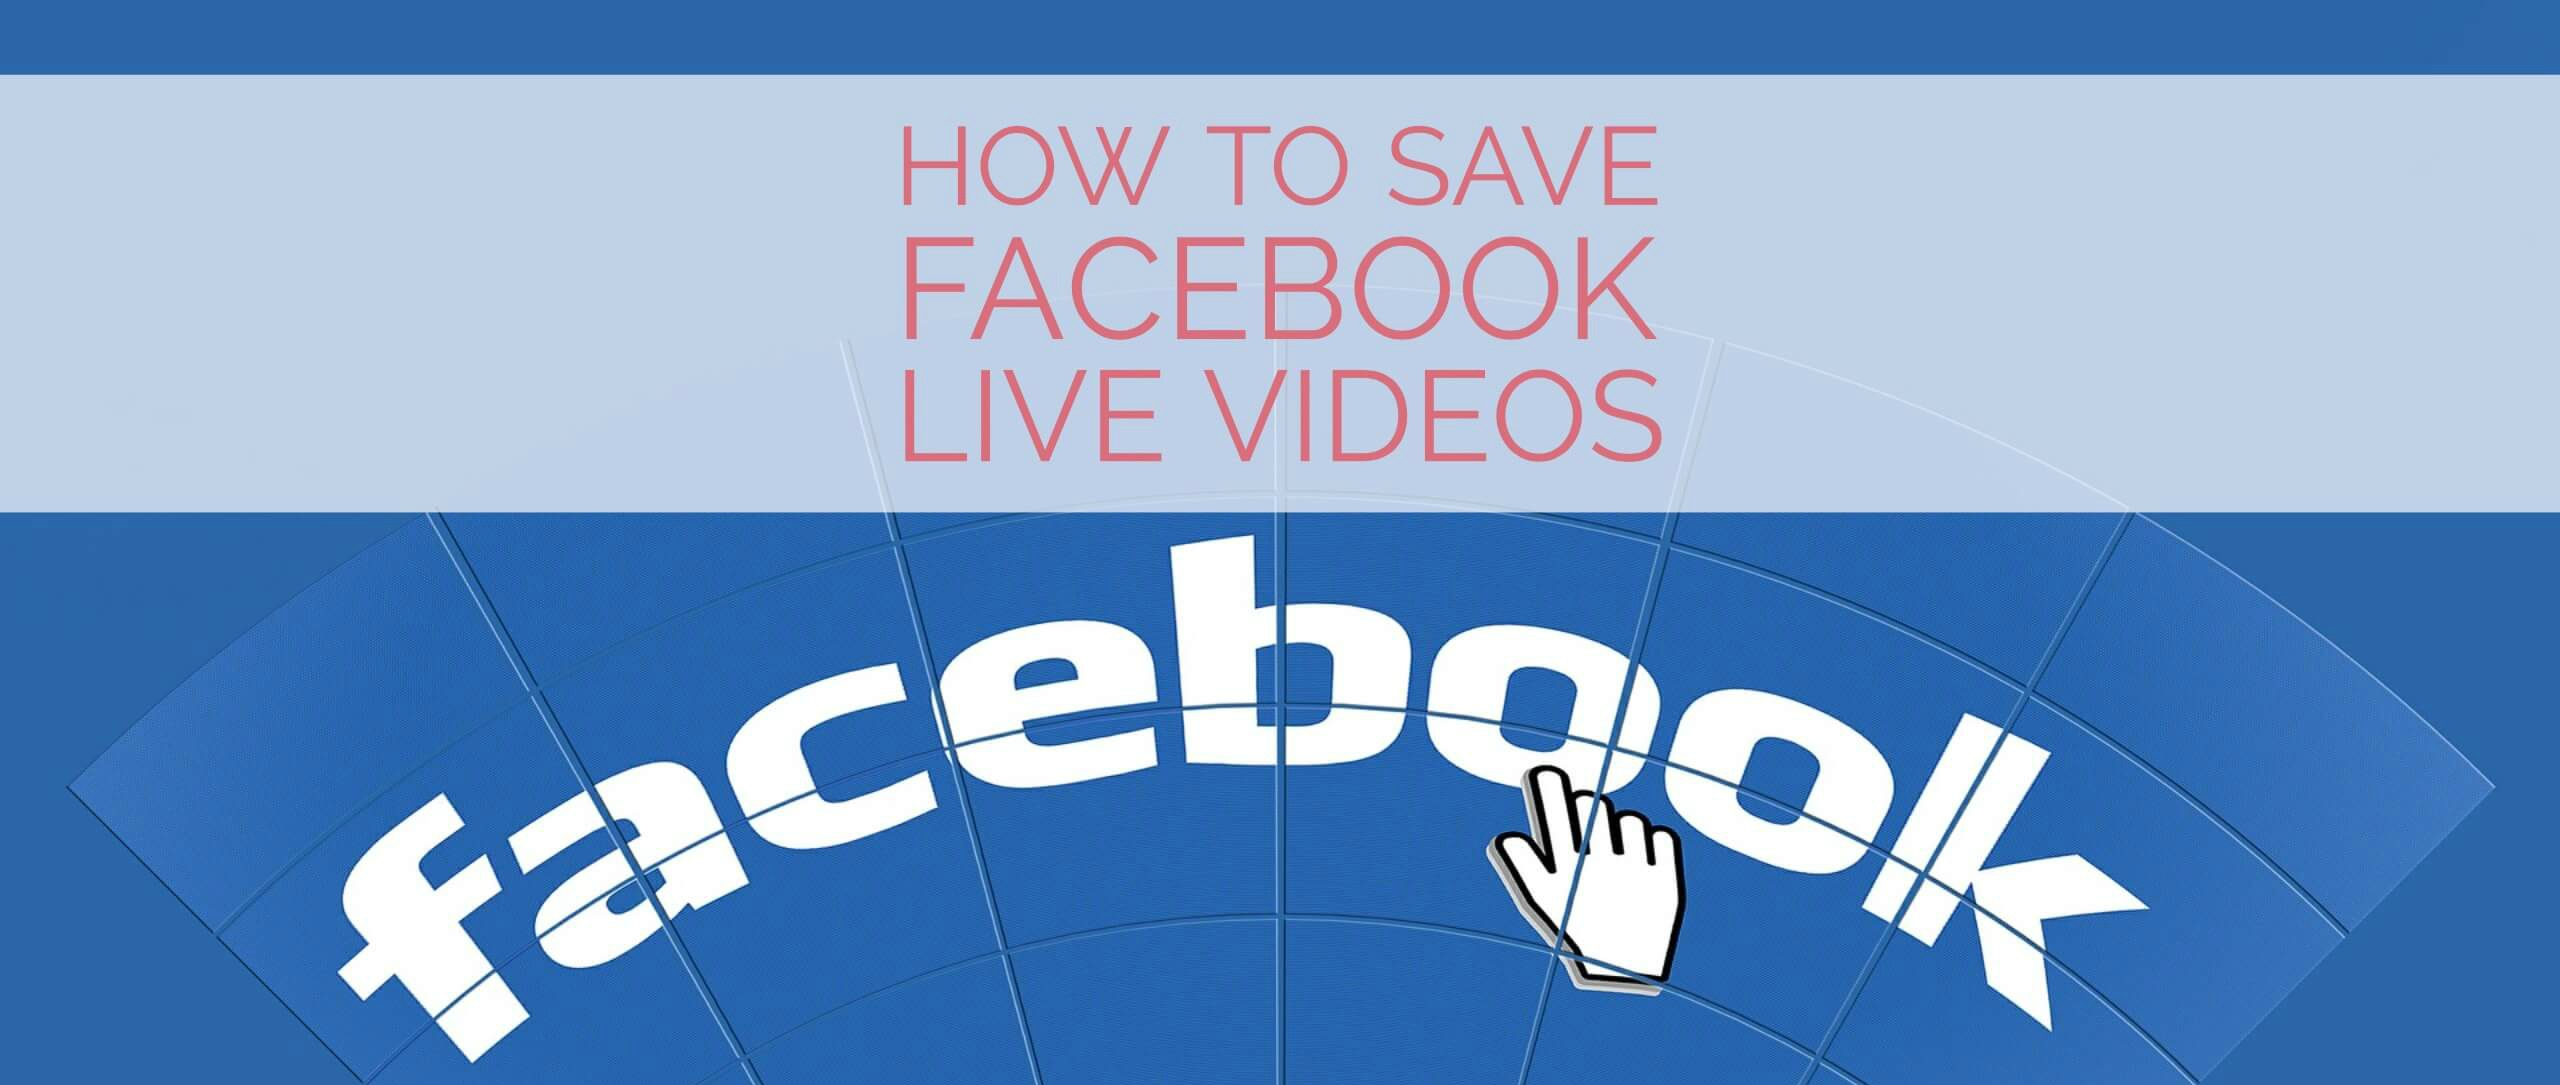 How to Save Facebook Live Videos (and Good-Bye Webinars